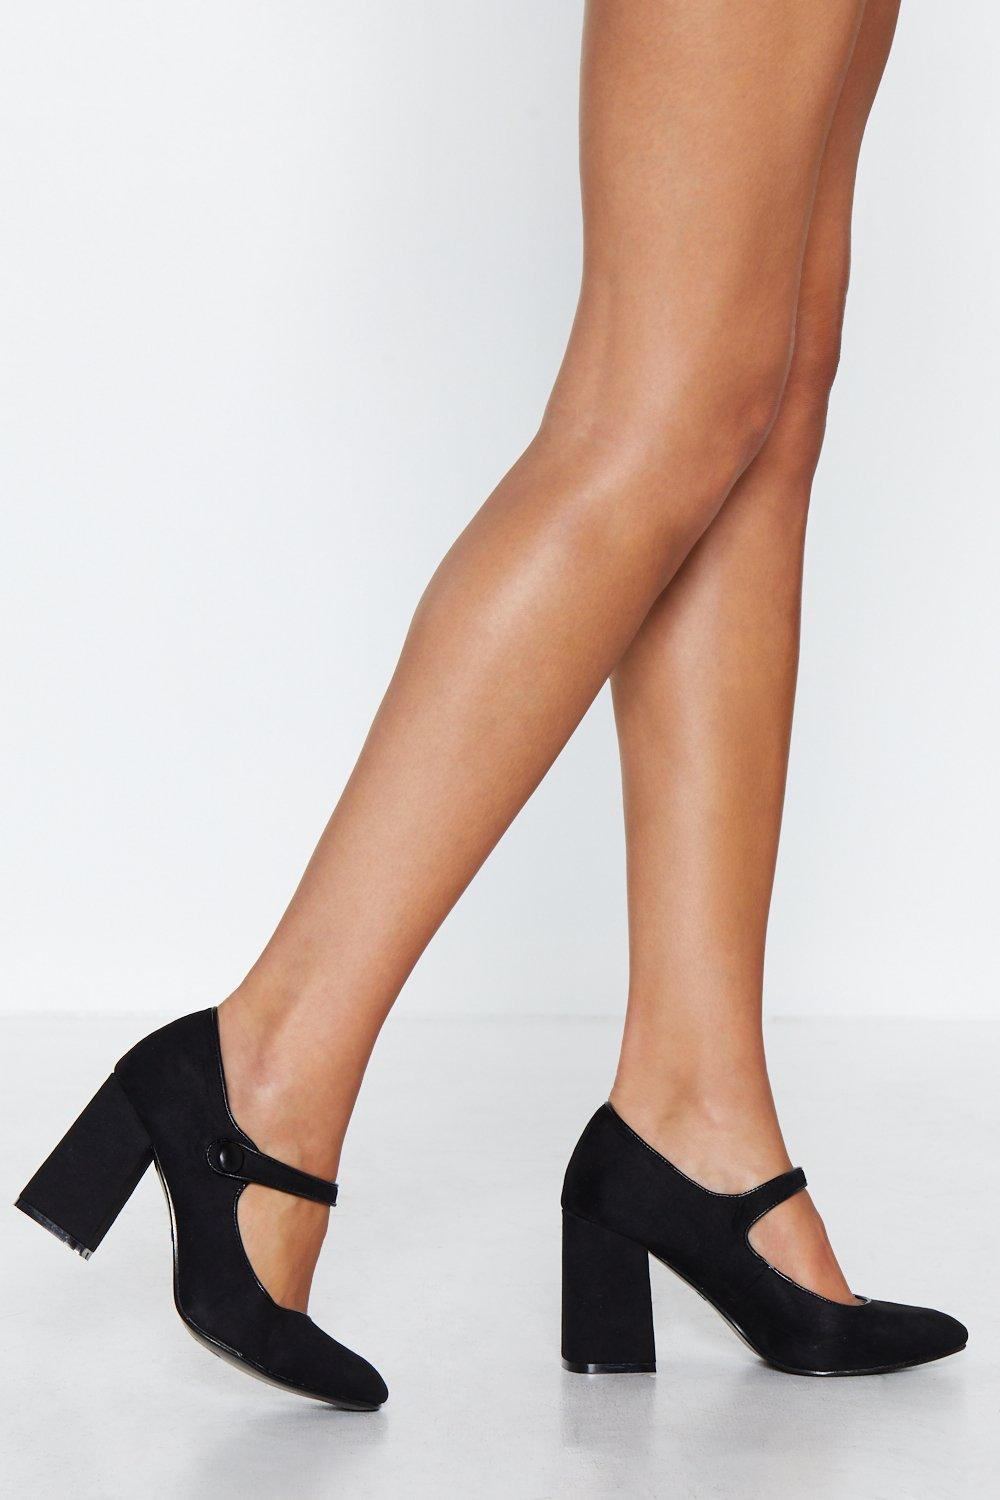 2973adcd8ddd0 Marry Me Mary Jane Heel | Shop Clothes at Nasty Gal!